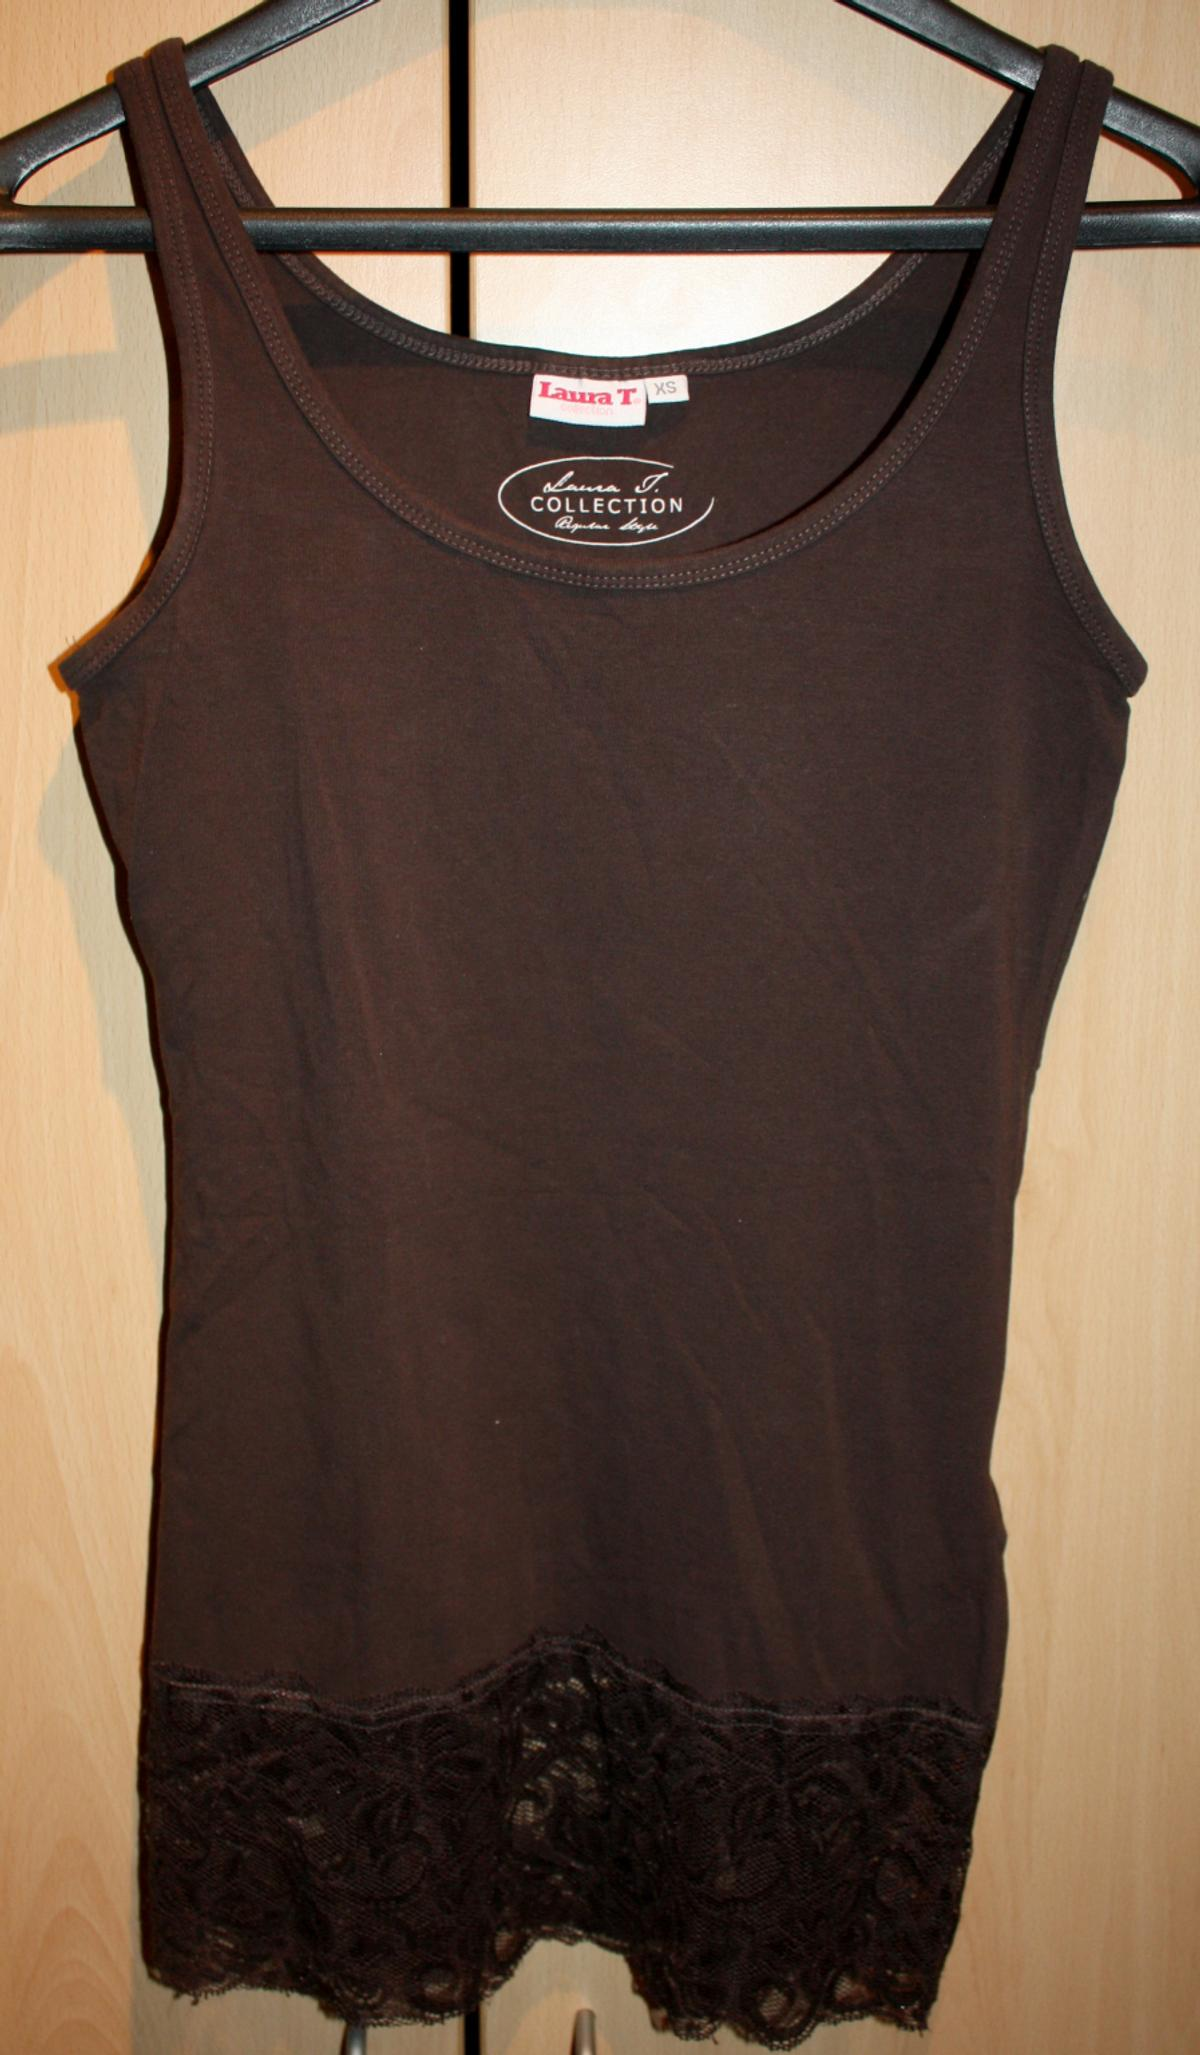 T Shirt by Laura Torelli, braun, Gr. XS in 32760 Detmold for